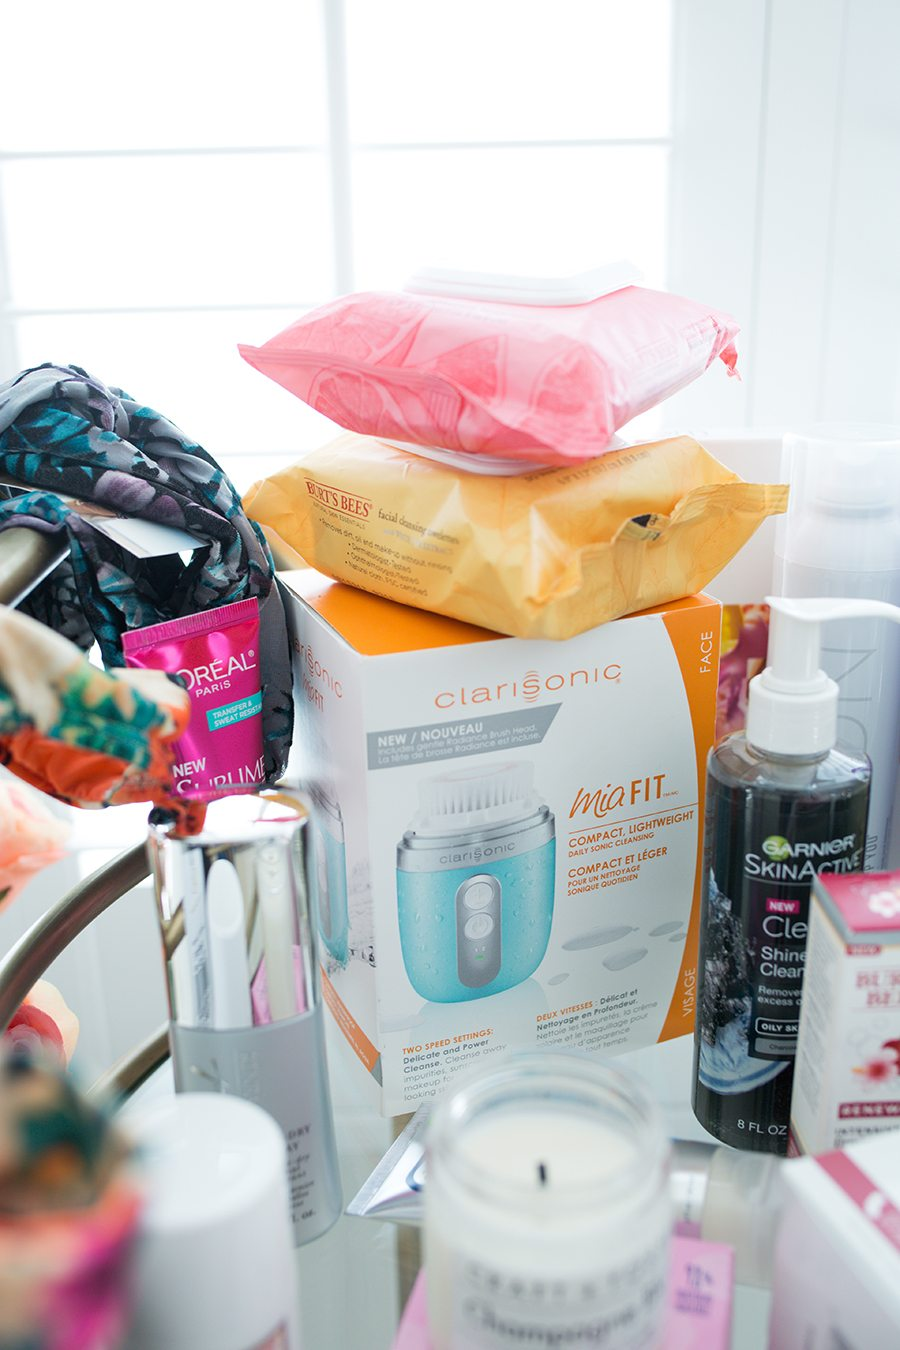 BEAUTY AND WELLNESS GIVEAWAY 8 by the skinny confidential